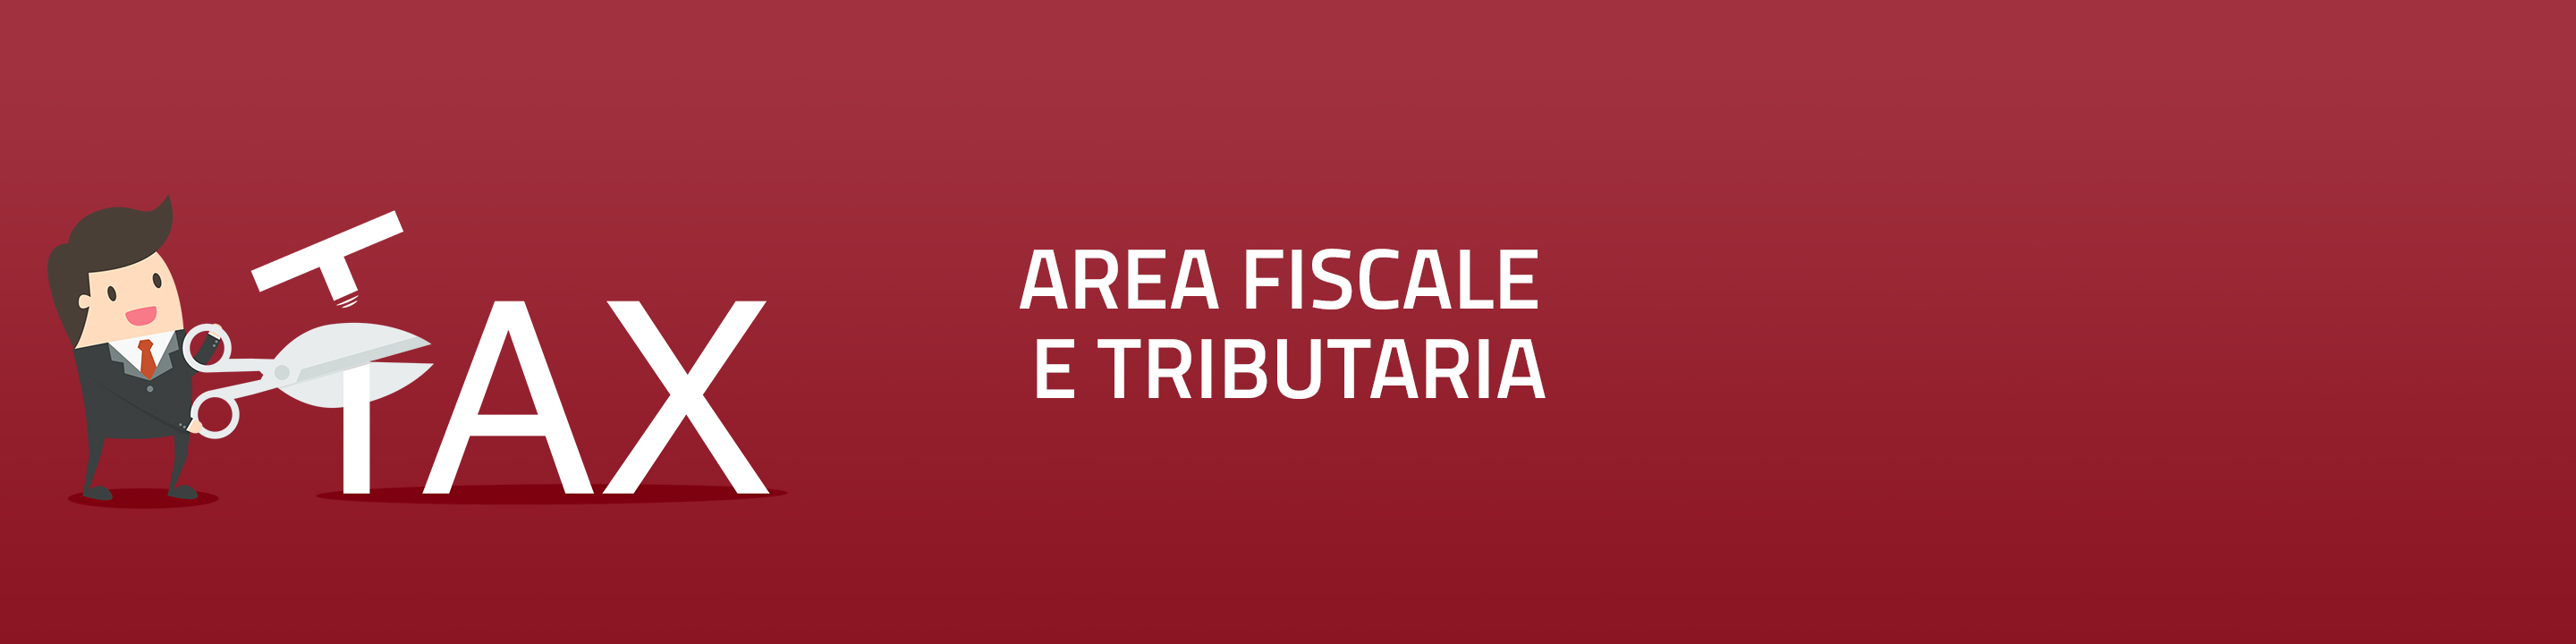 banner-area-fiscale